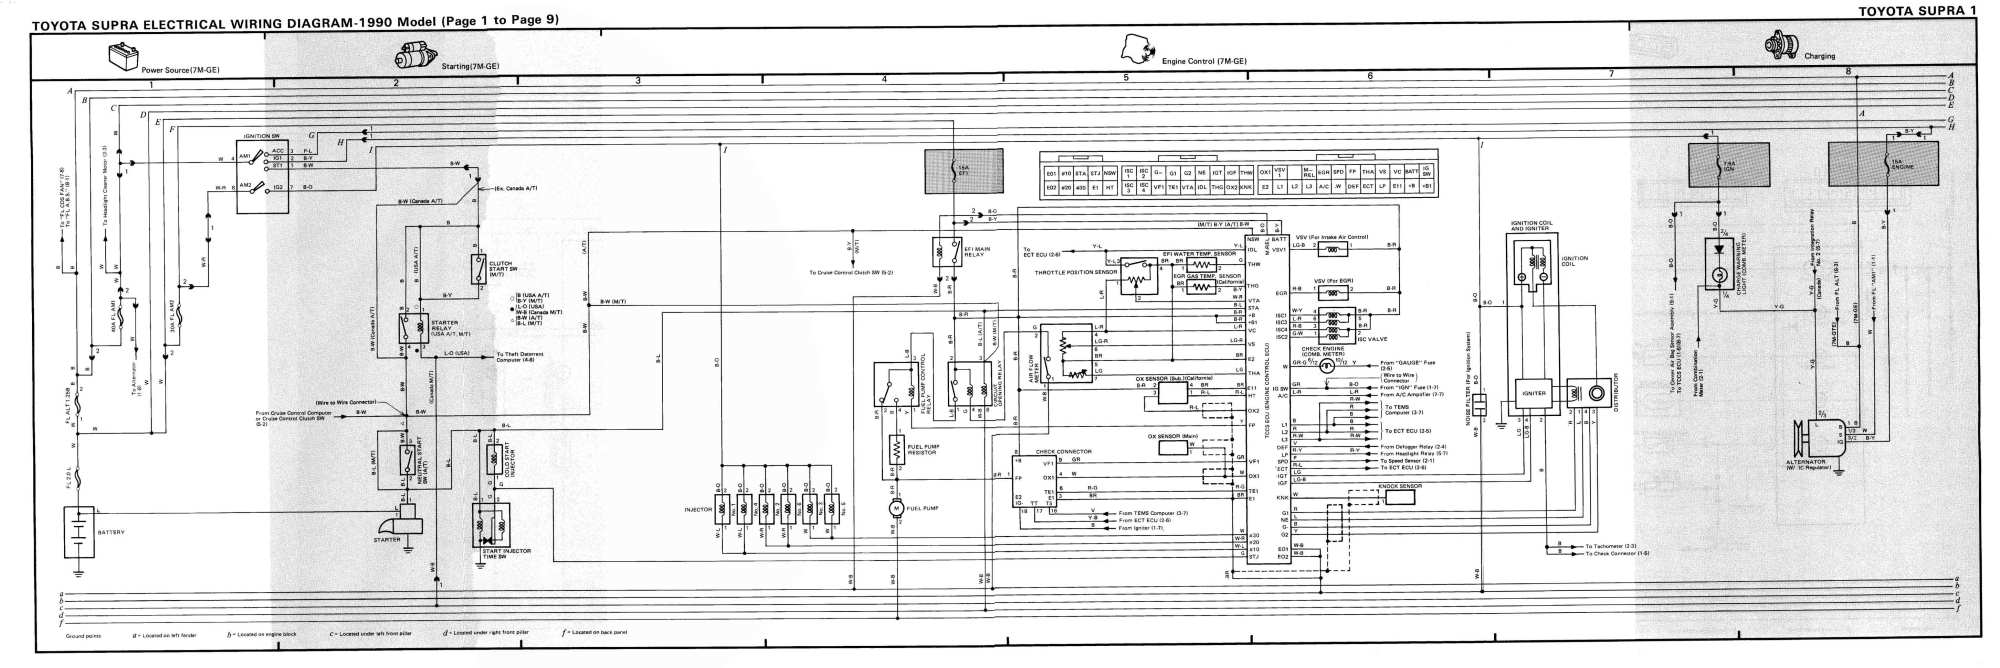 hight resolution of 1987 toyota supra wiring diagram wiring diagram sample 87 toyota supra wiring harness diagram